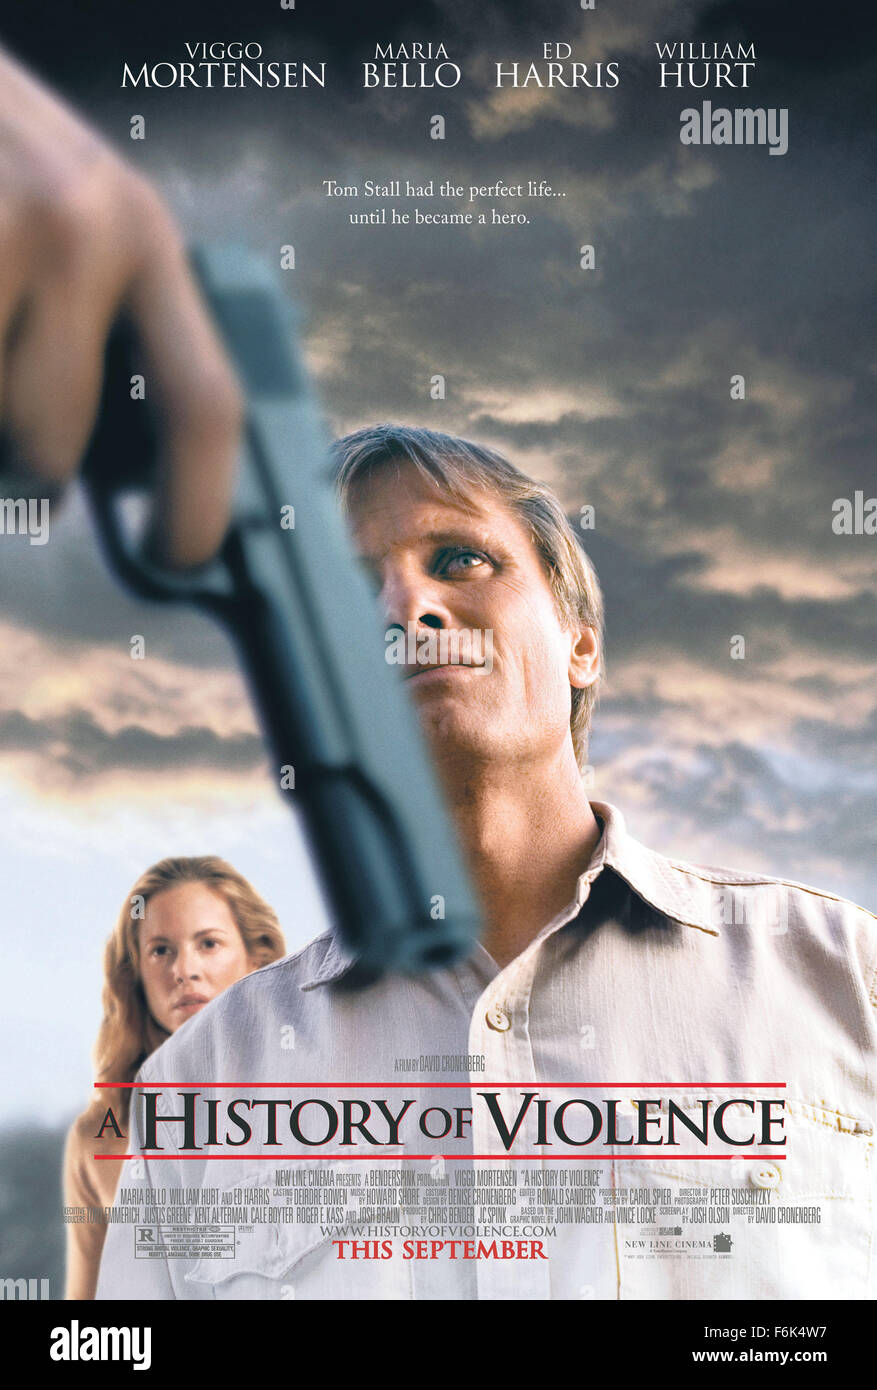 RELEASE DATE: September 30, 2005  MOVIE TITLE: A History of Violence